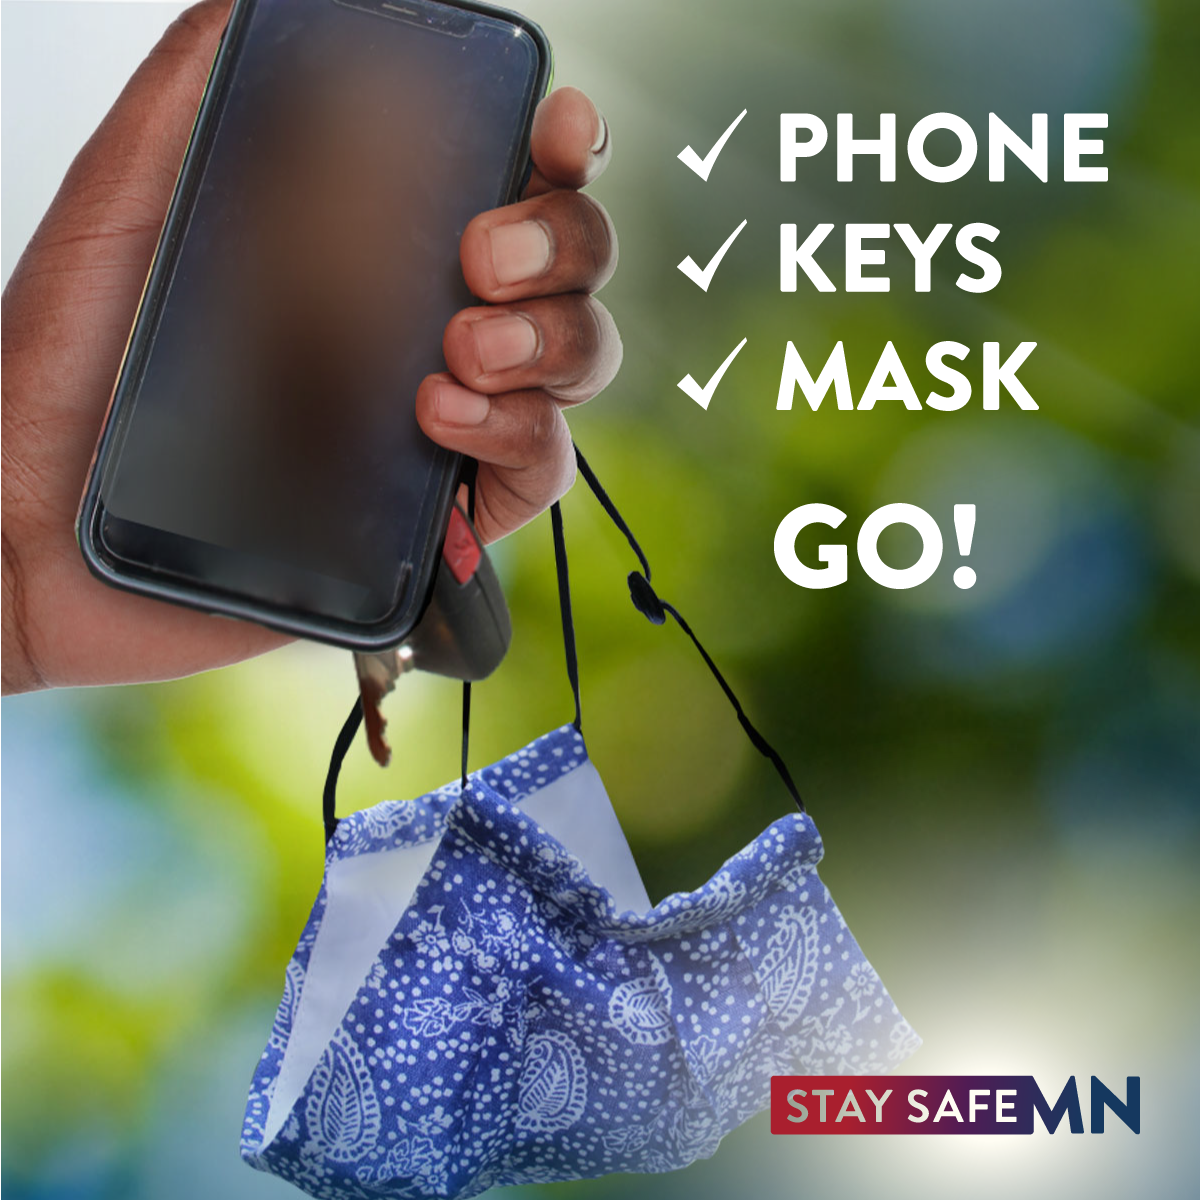 Phone, Keys, Mask, Go!